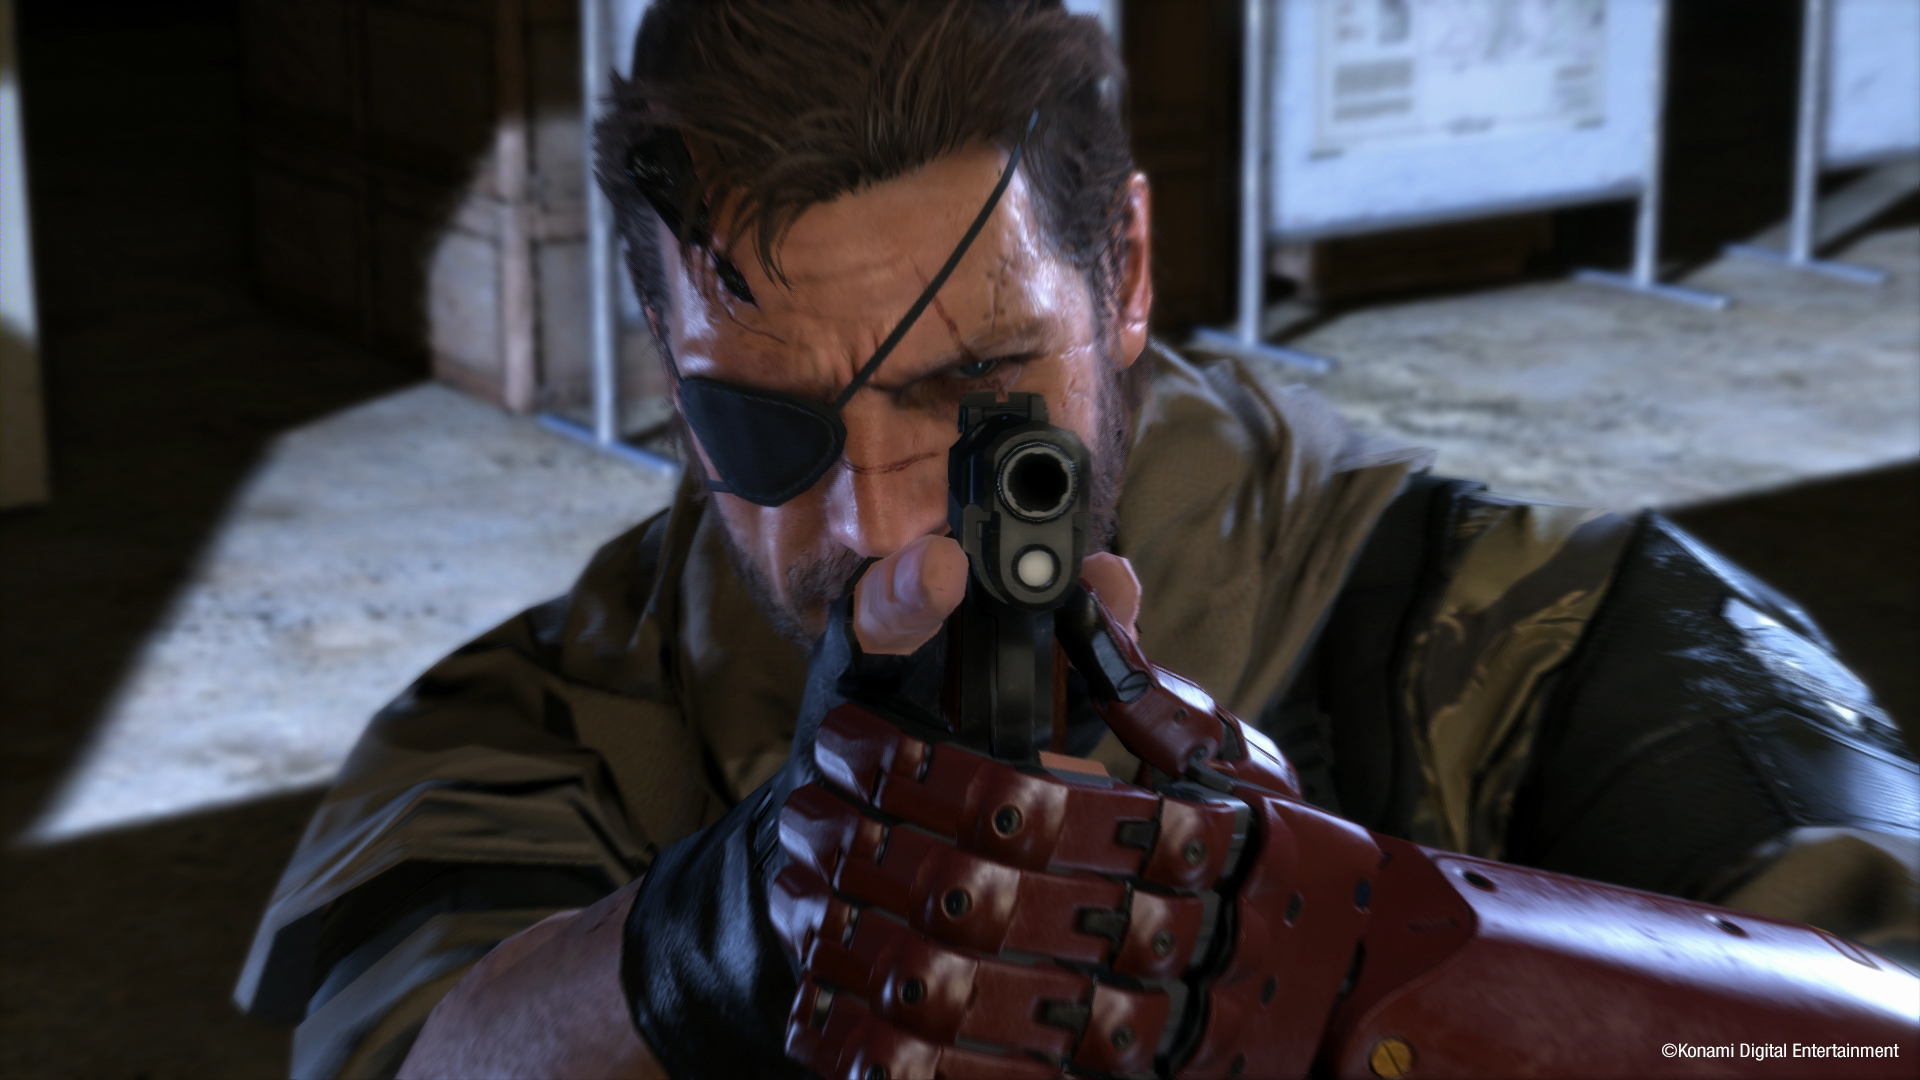 Metal Gear Solid V: The Phantom Pain – new launch trailer, companion app announced